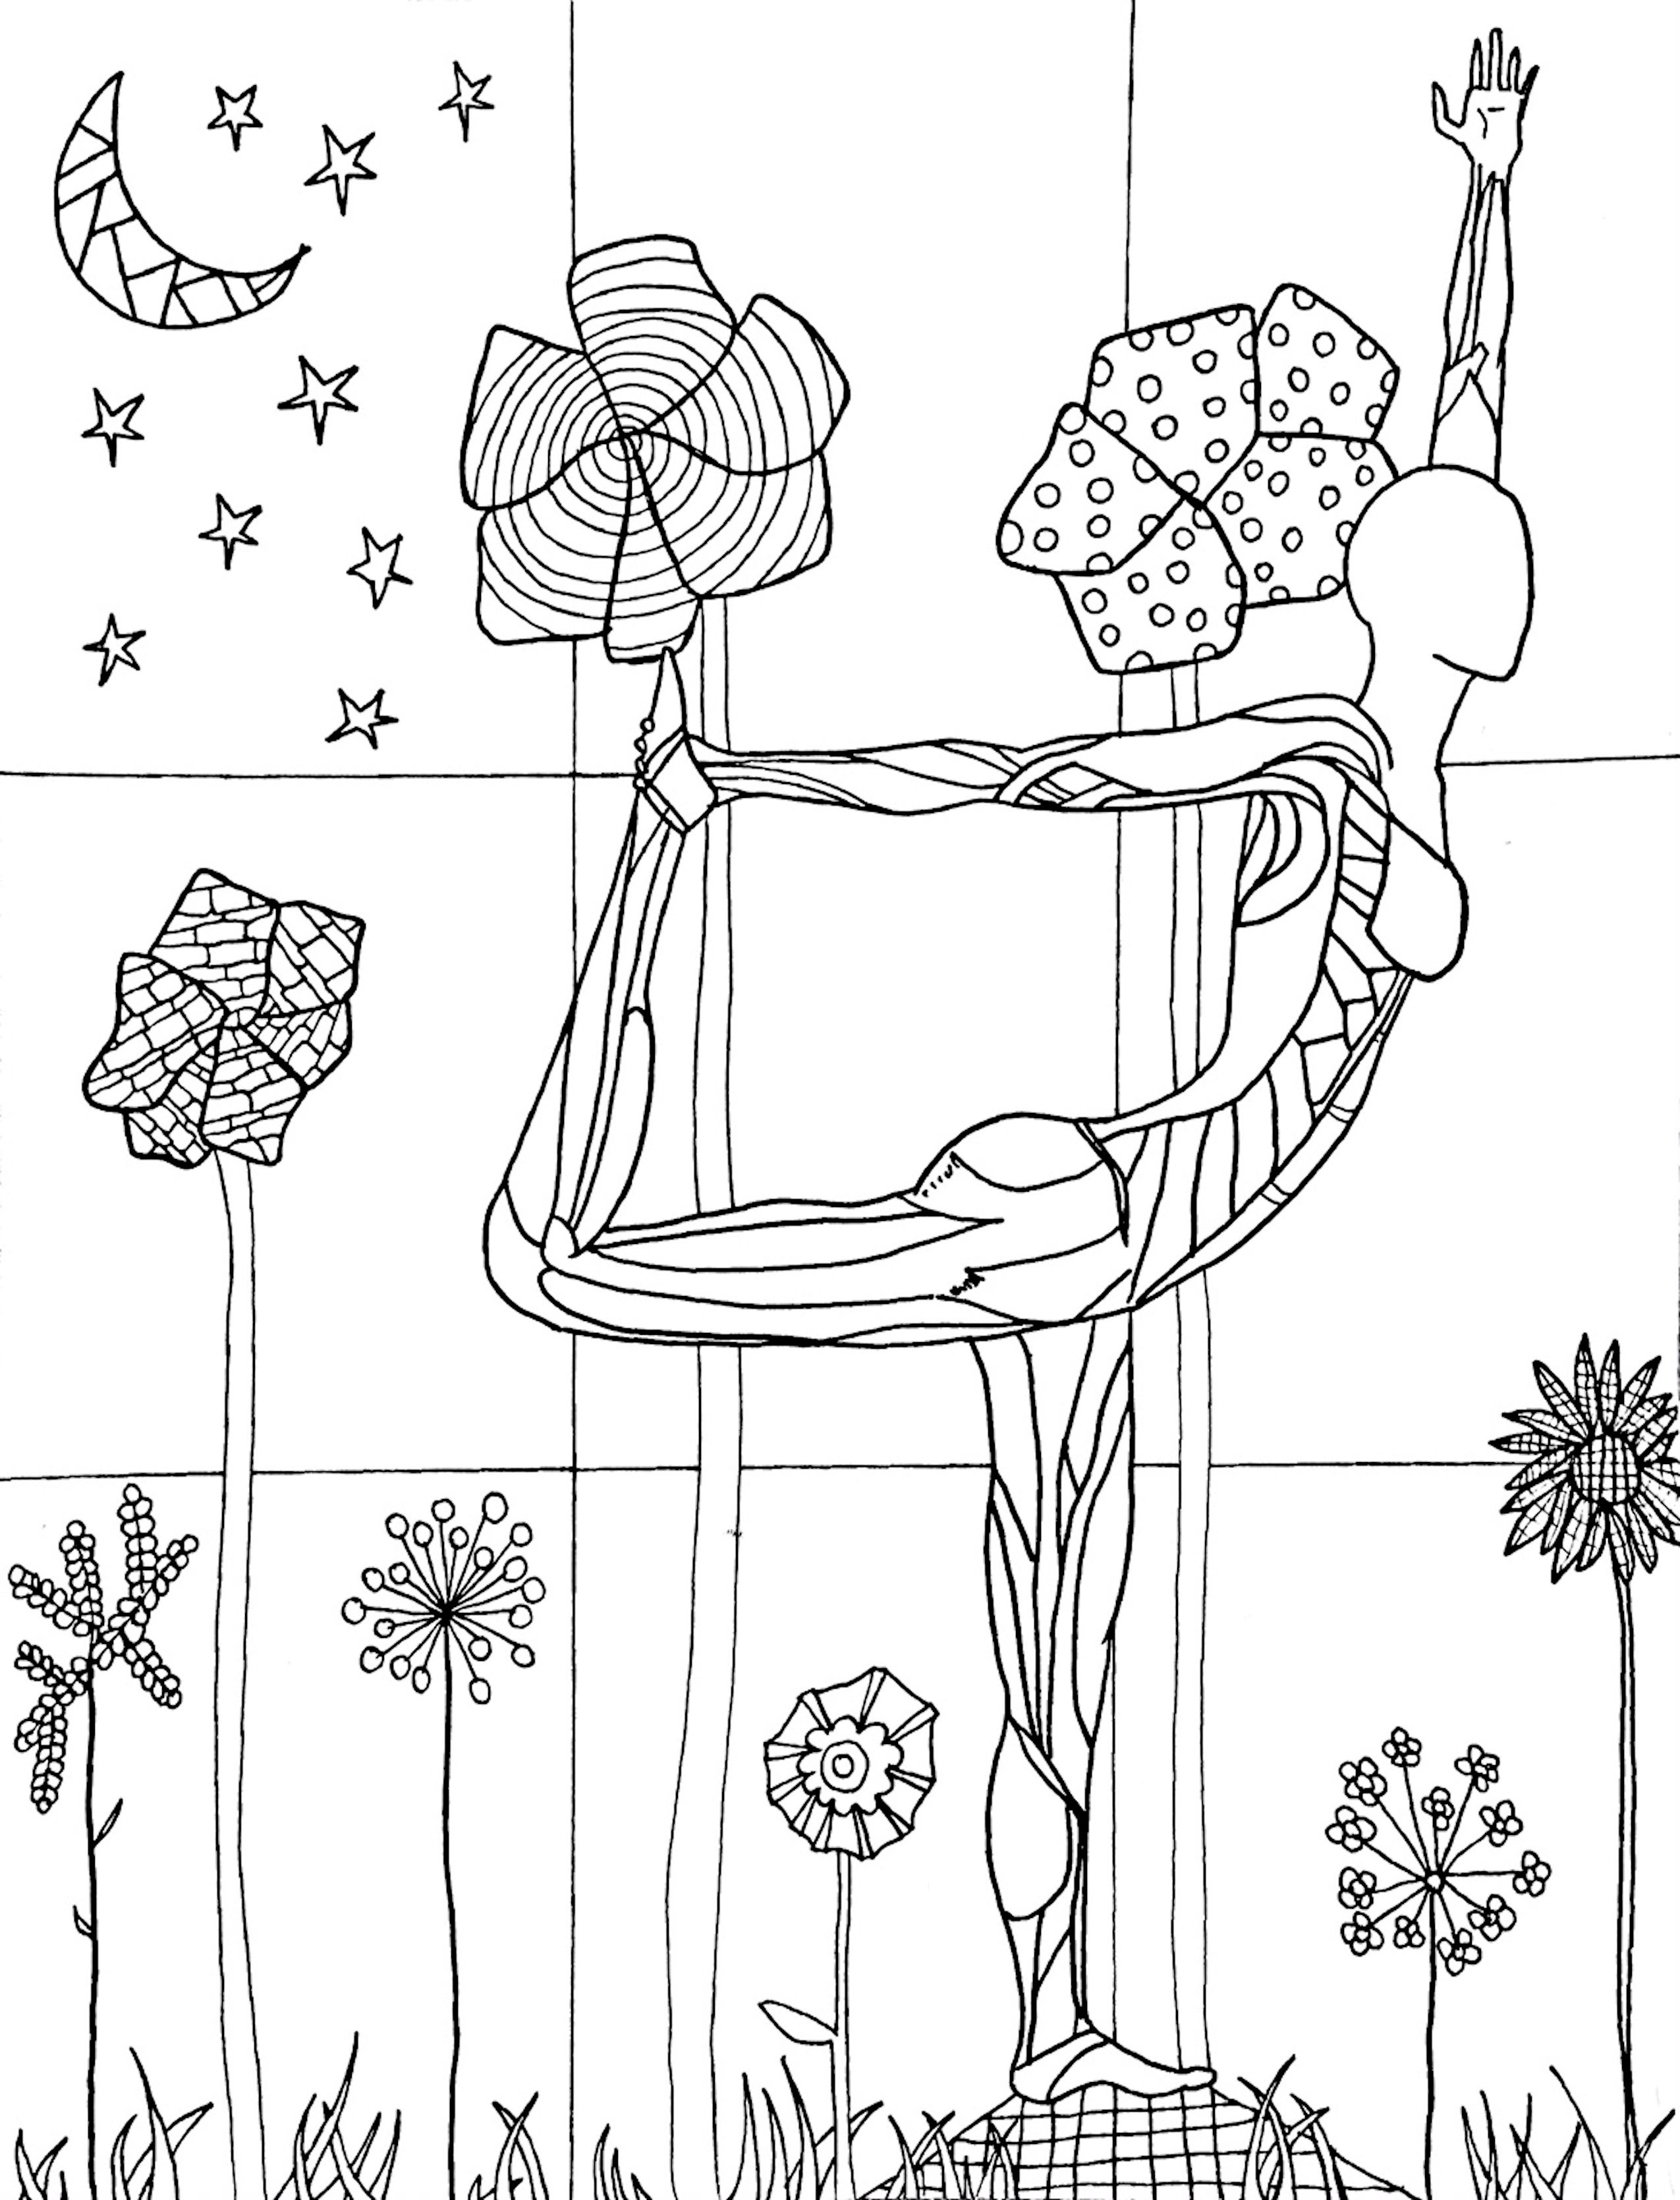 Yoga Colouring Pages Google Search Yoga For Kids Childrens